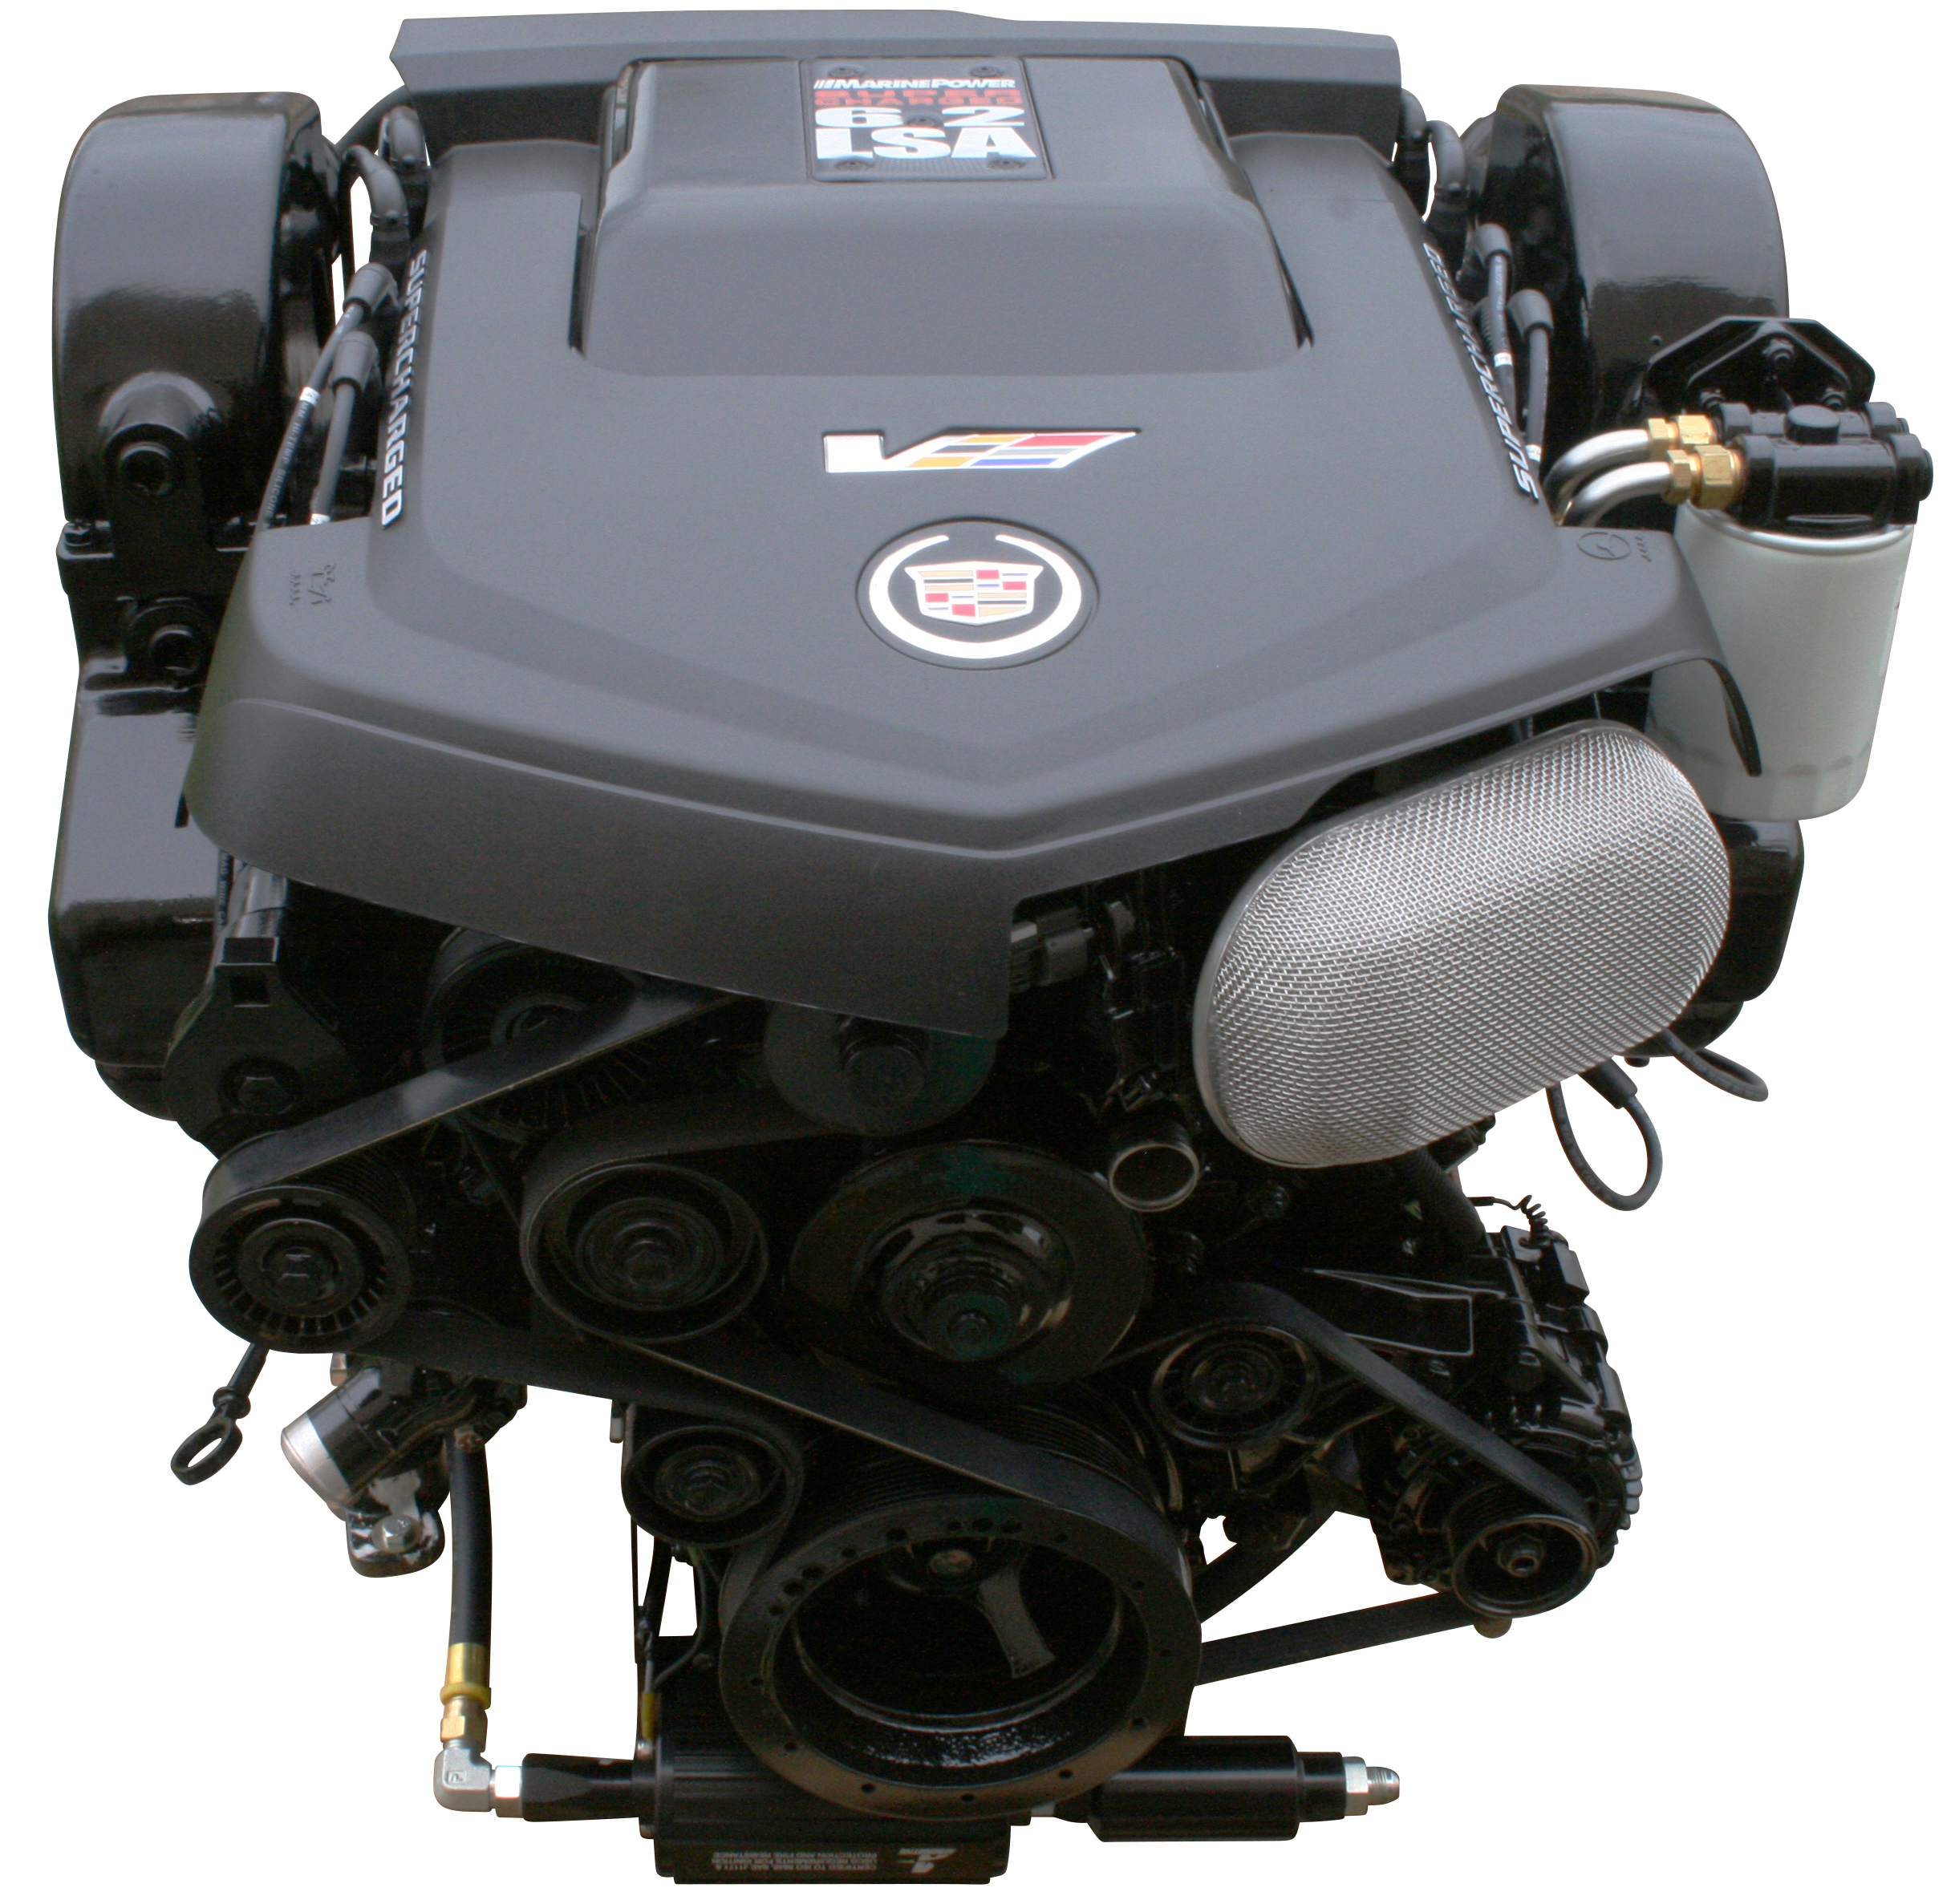 Boat Engine Jet Cover 74fjpbyc Omc Cobra Sterndrive Power Steering Pump Diagram And Parts Pictures